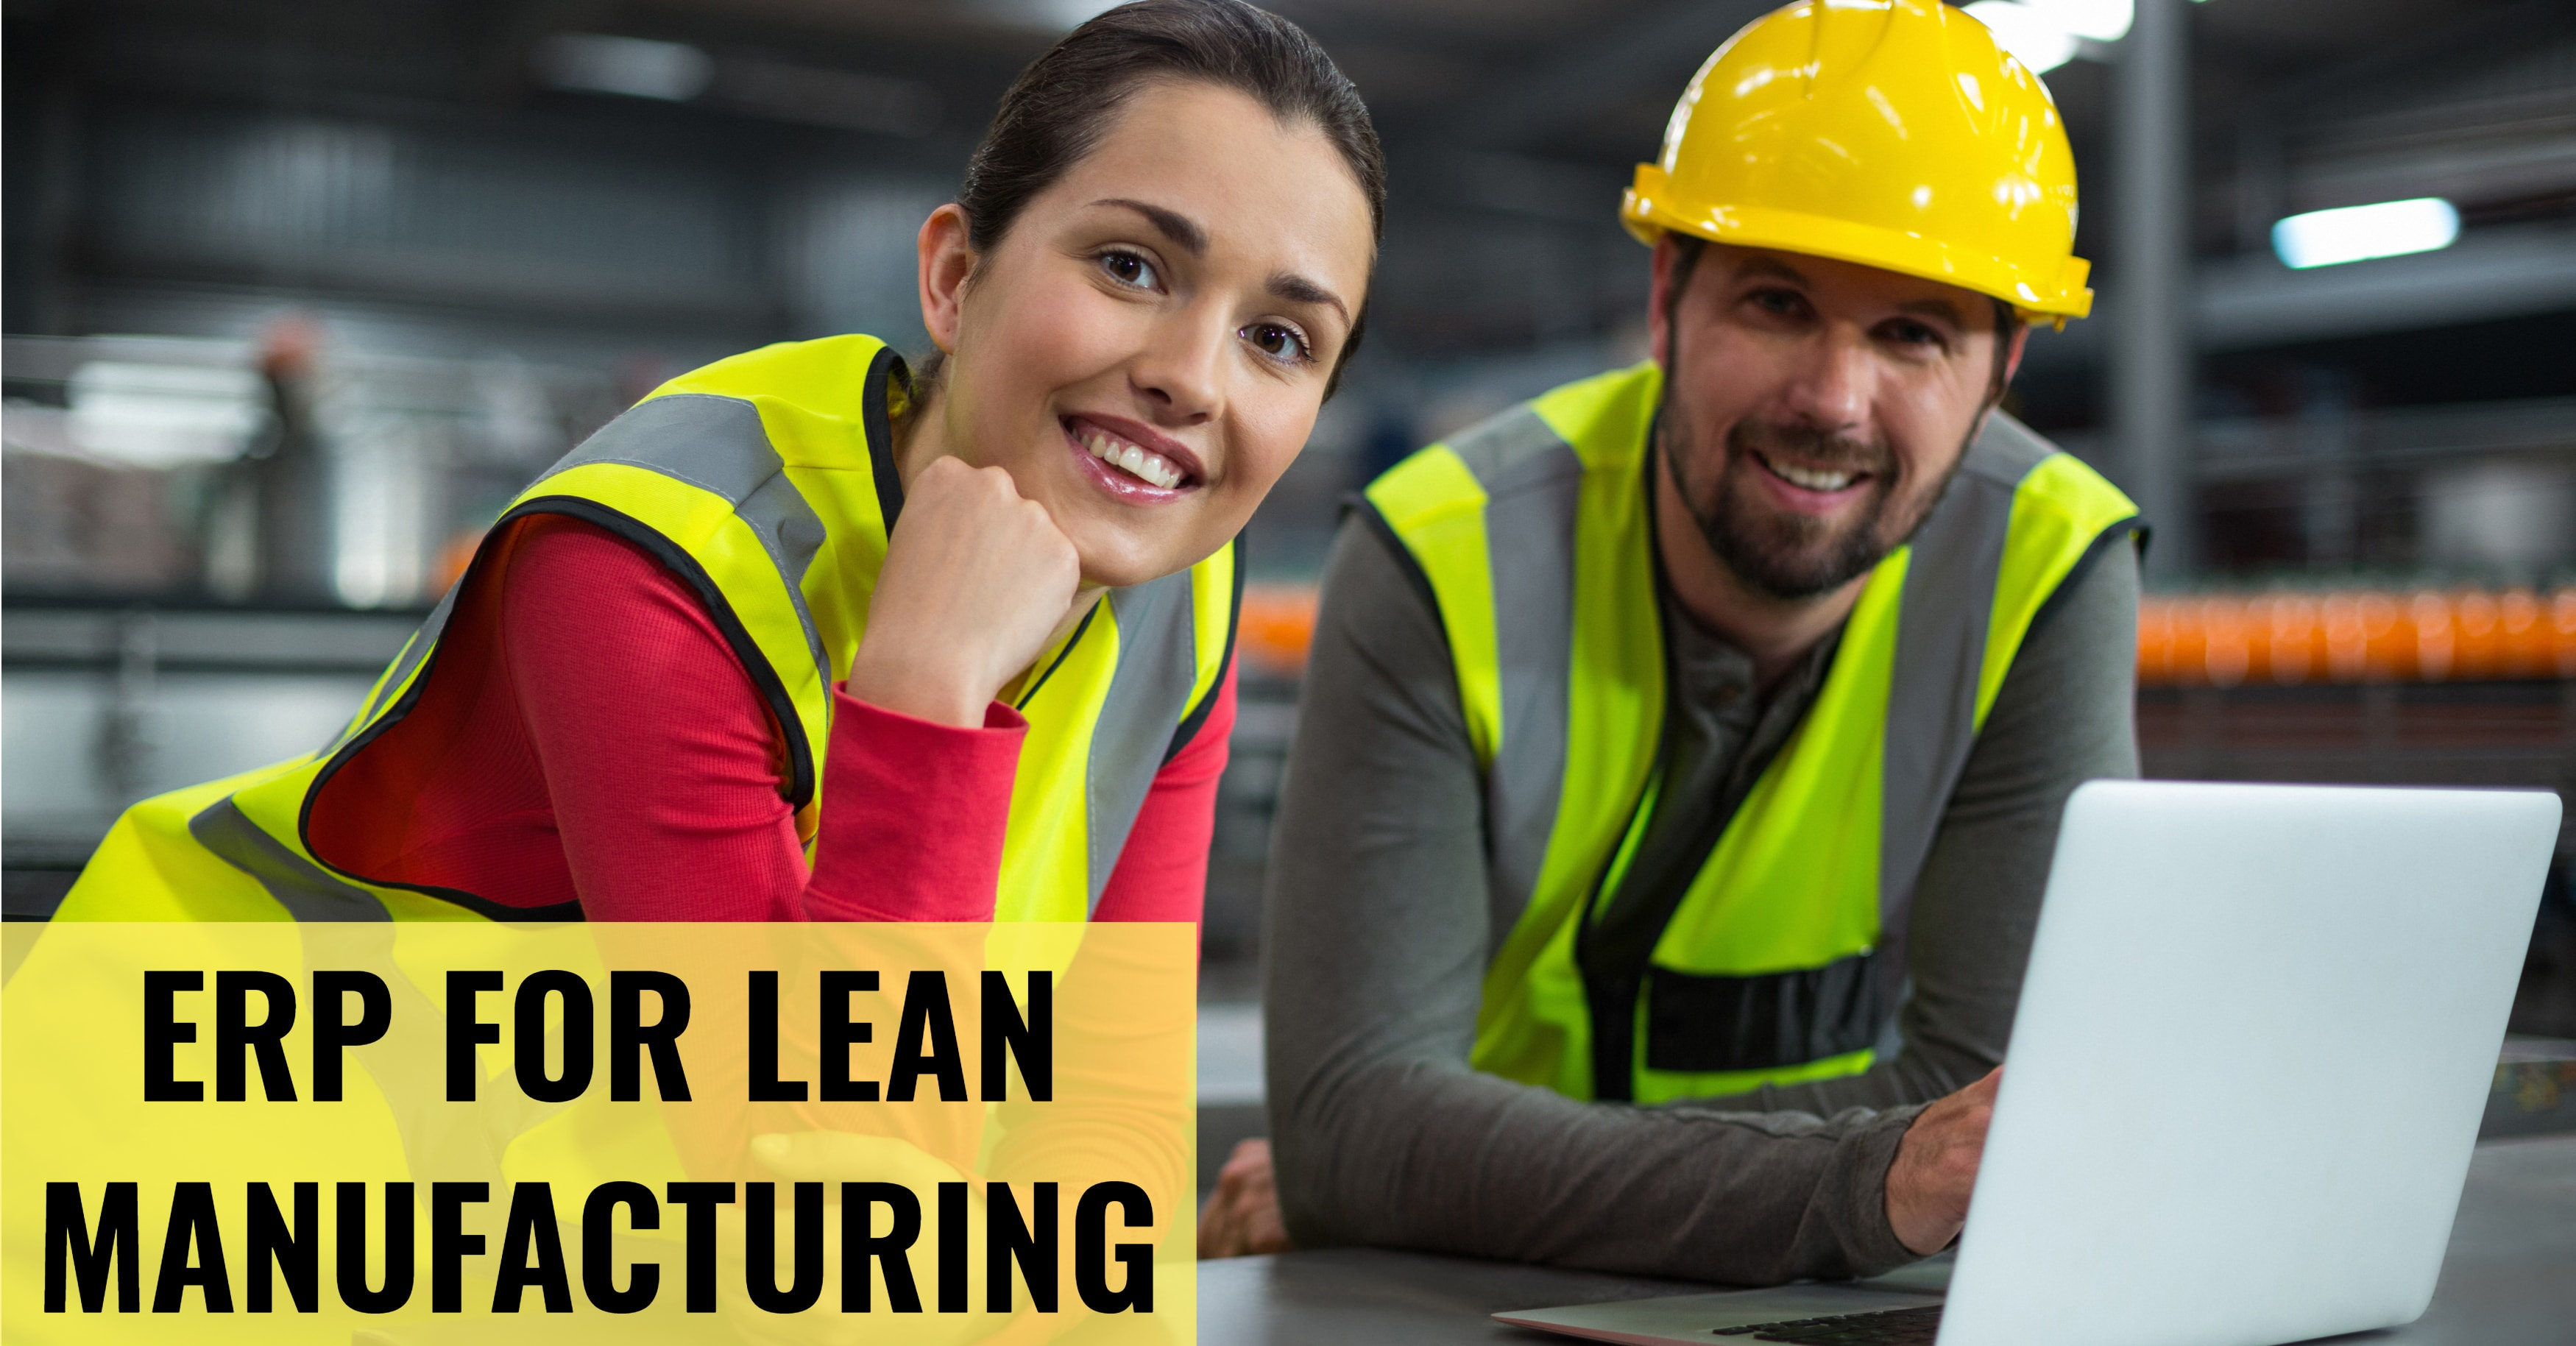 Use ERP to Become a Lean Manufacturer